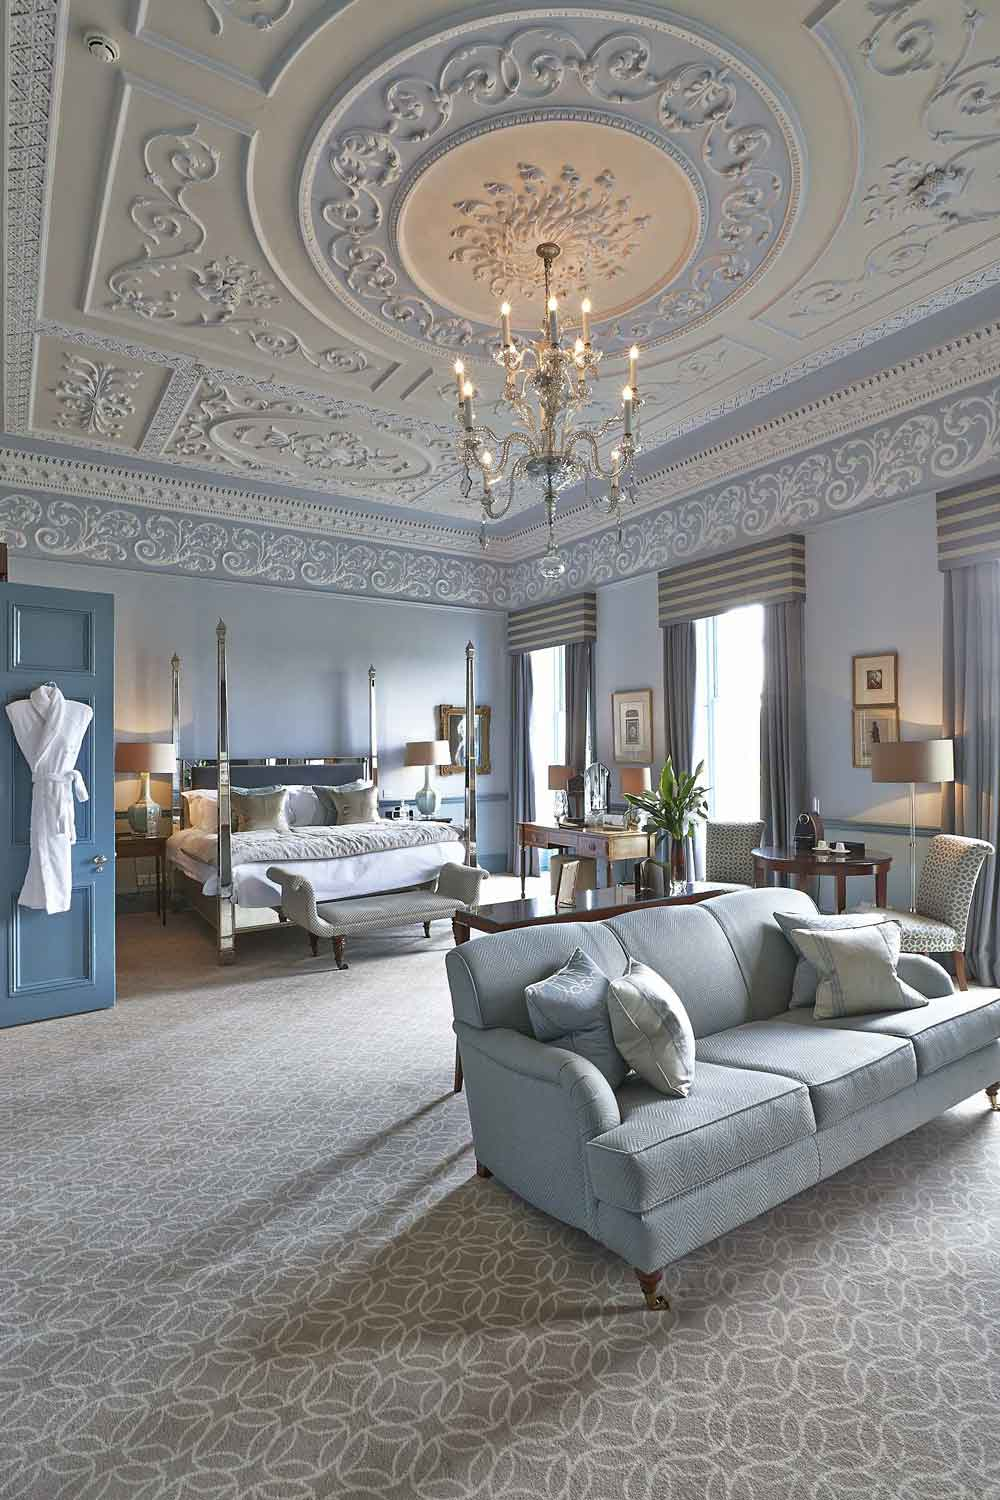 Hotel Room Photography: Royal-crescent-hotel-bath-2